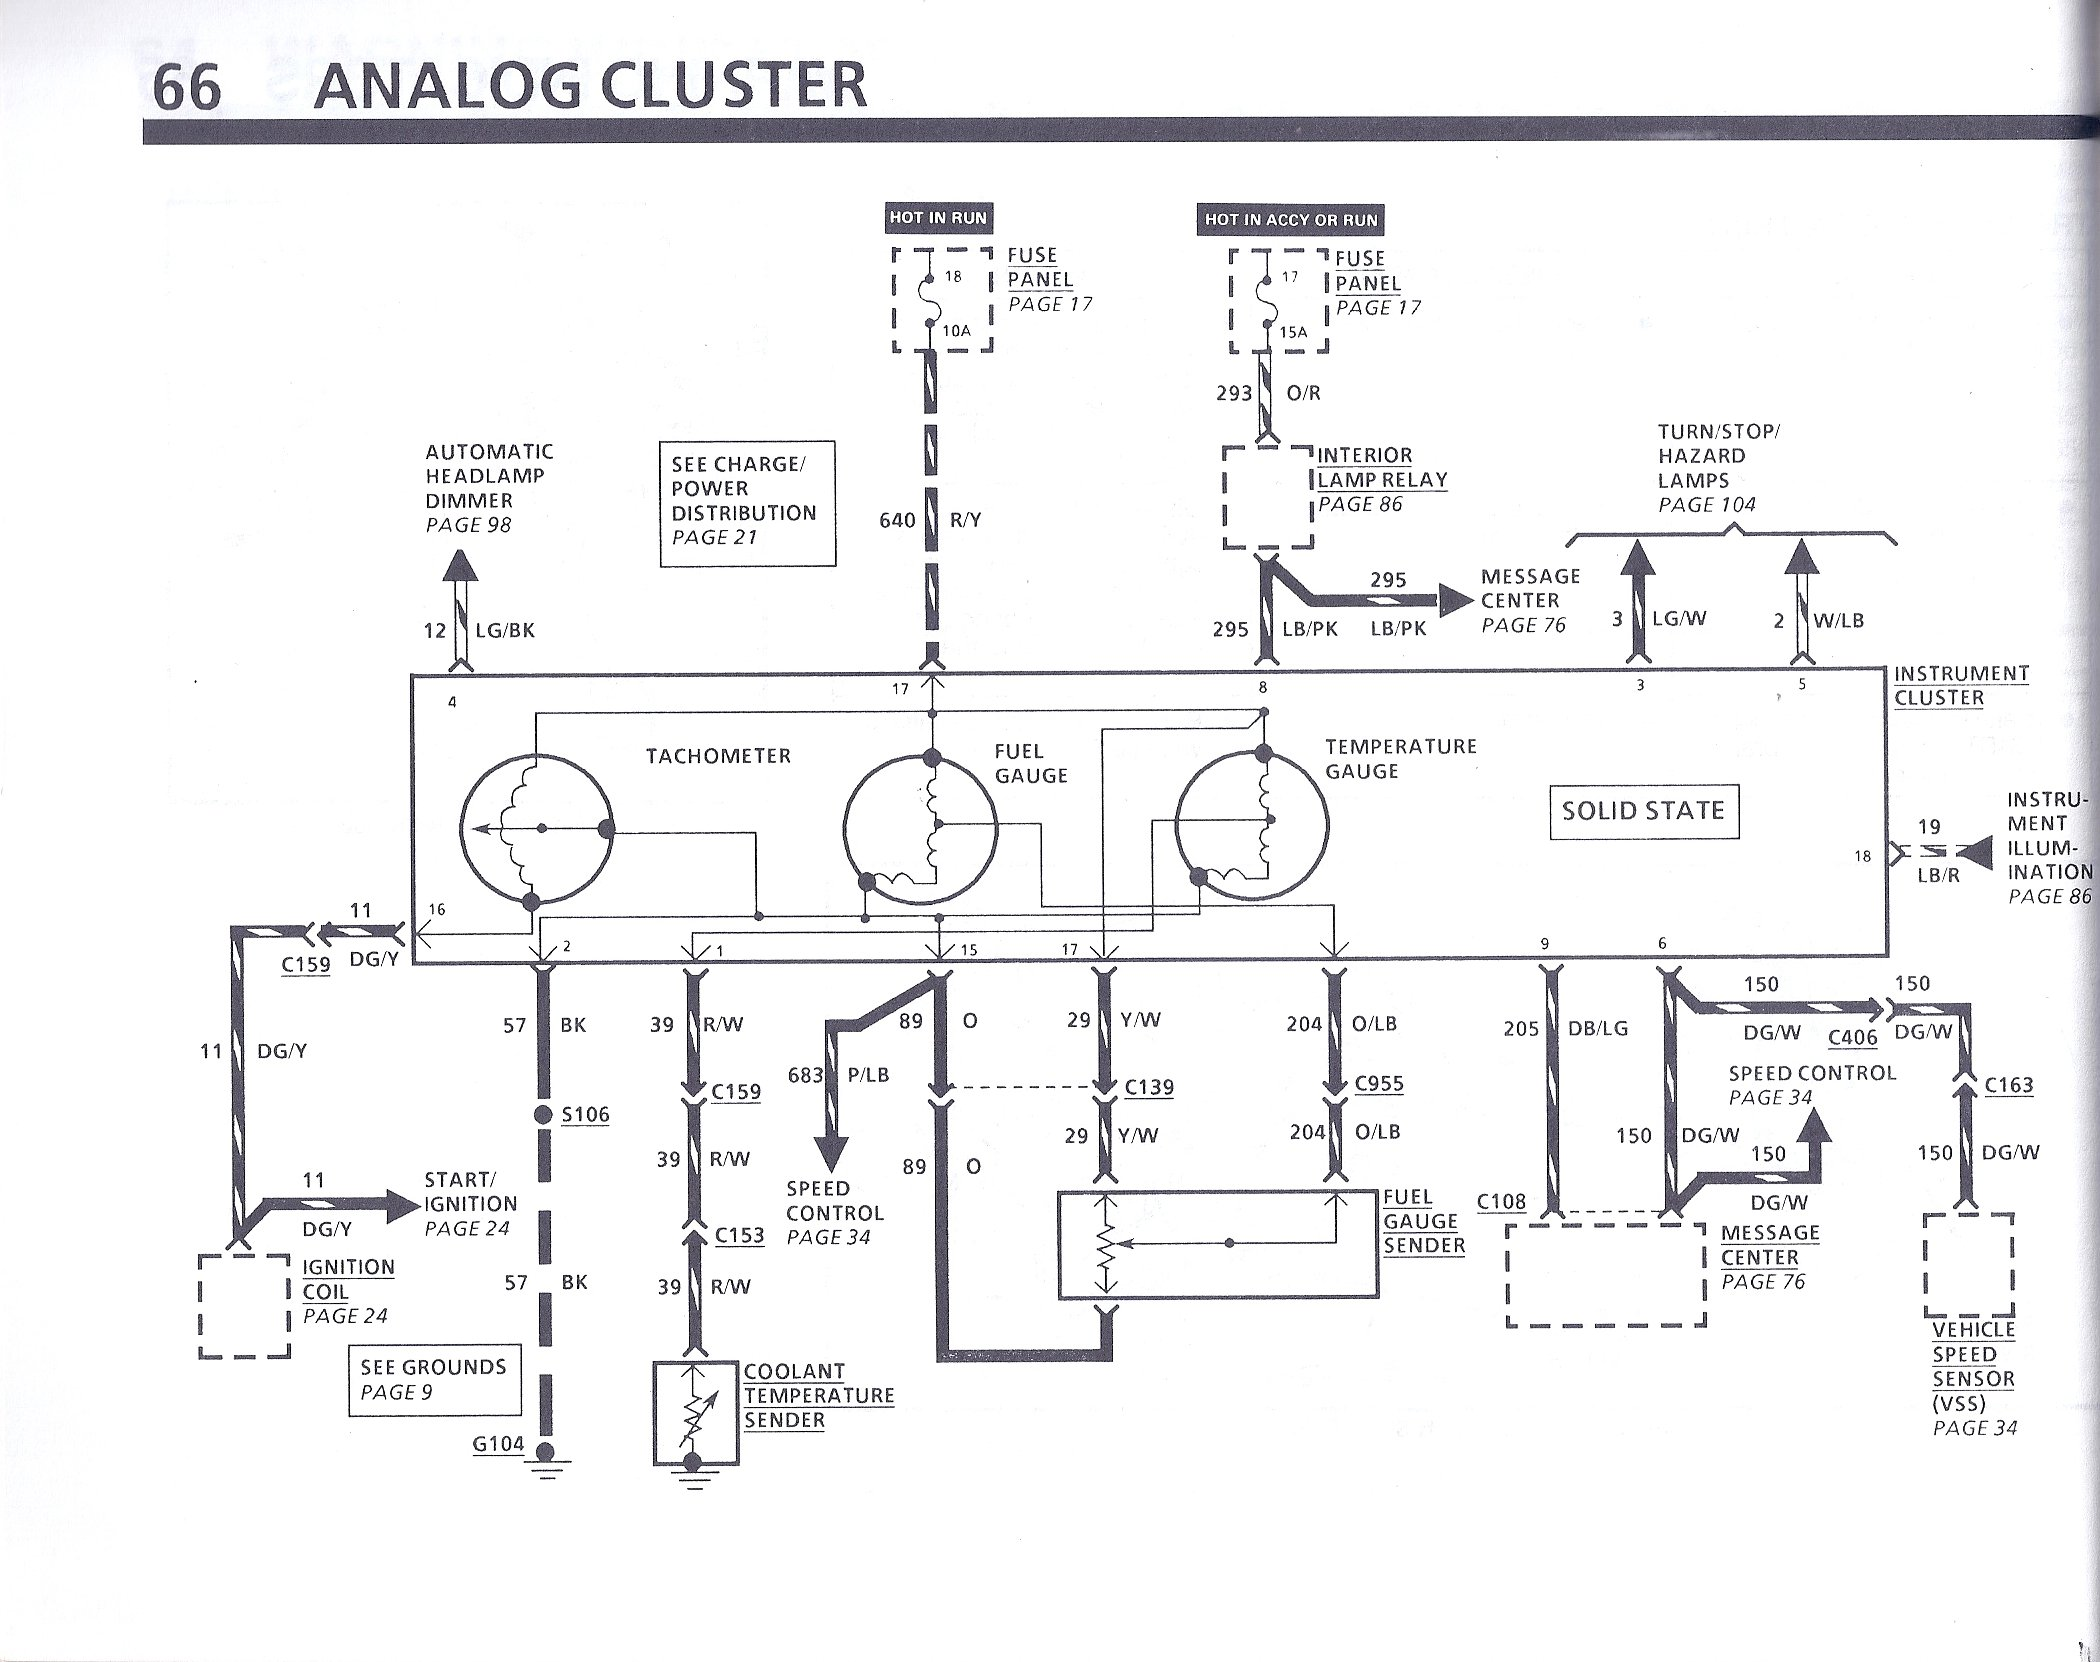 Mark 7 Wiring Diagram Diagram Data Schema